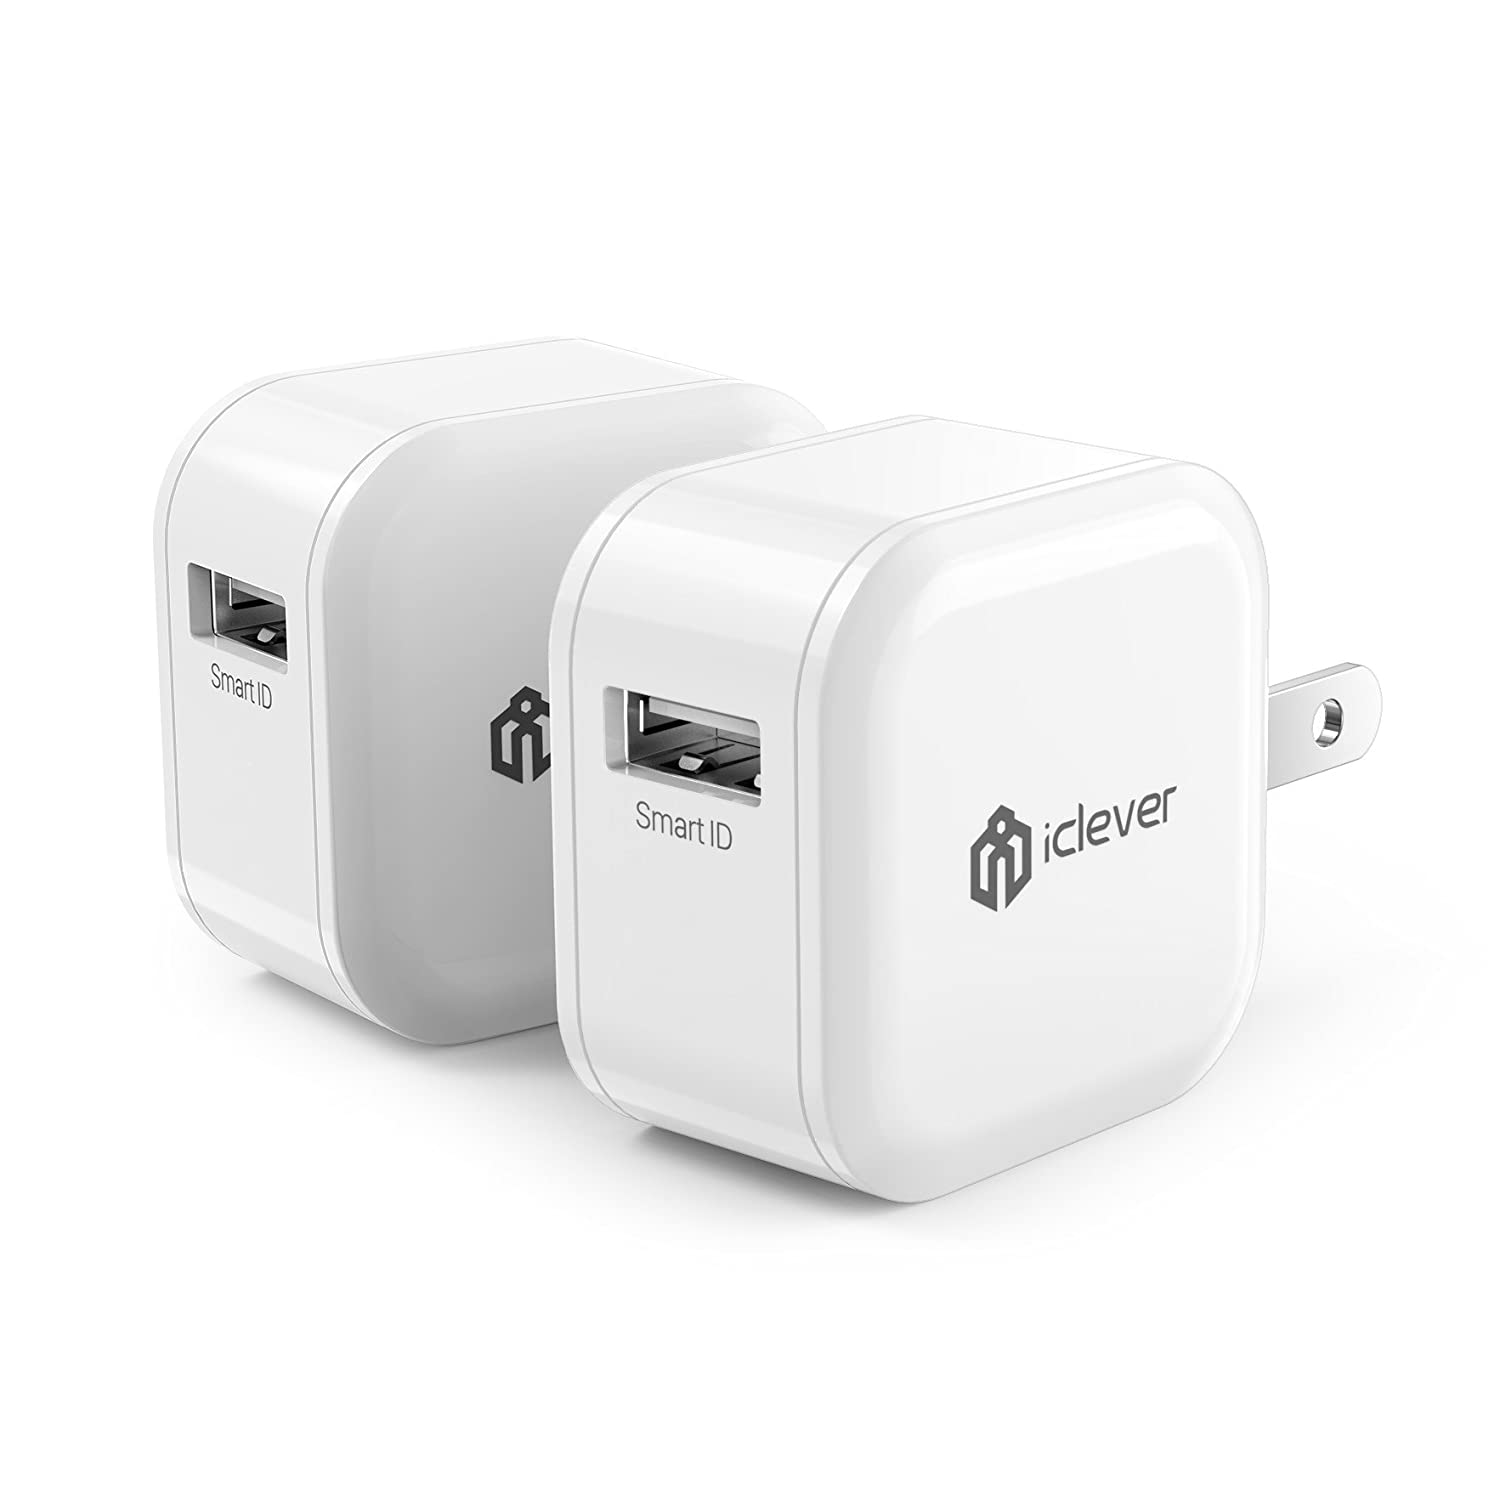 iClever USB Charger 2.4A 12W 2-Pack Wall Charger, Fast Quick Charger Adapter, Portable Travel Charger Cube with Foldable Plug for iPhone Xs/XS Max/XR/X/8/7/6/Plus, iPad Pro/Air/Mini/Samsung and More